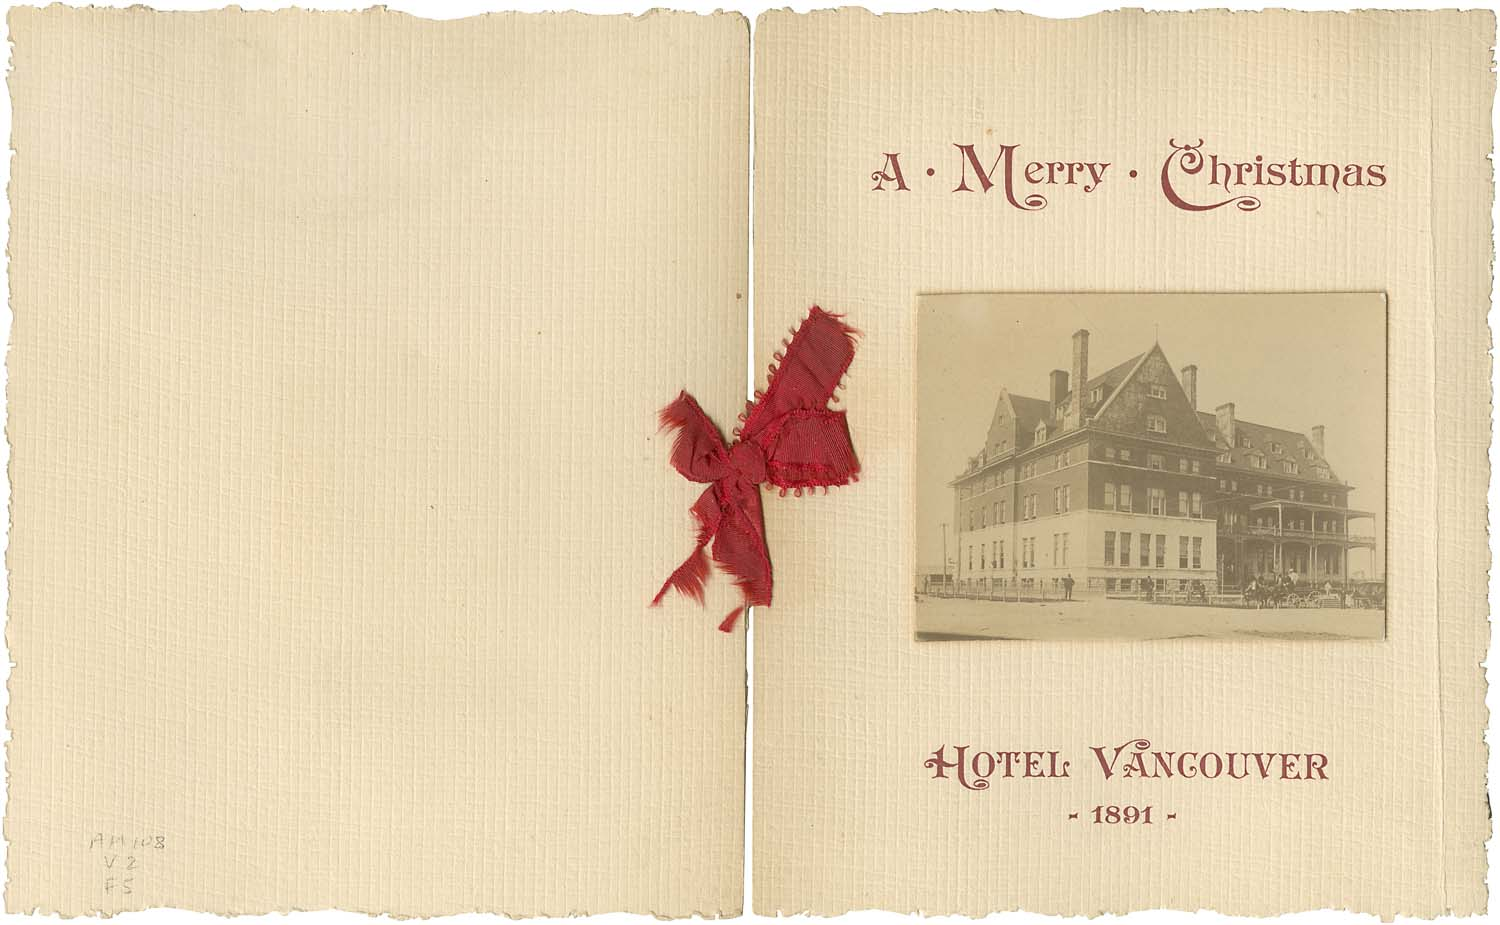 Cover of Christmas menu for Hotel Vancouver, 1891